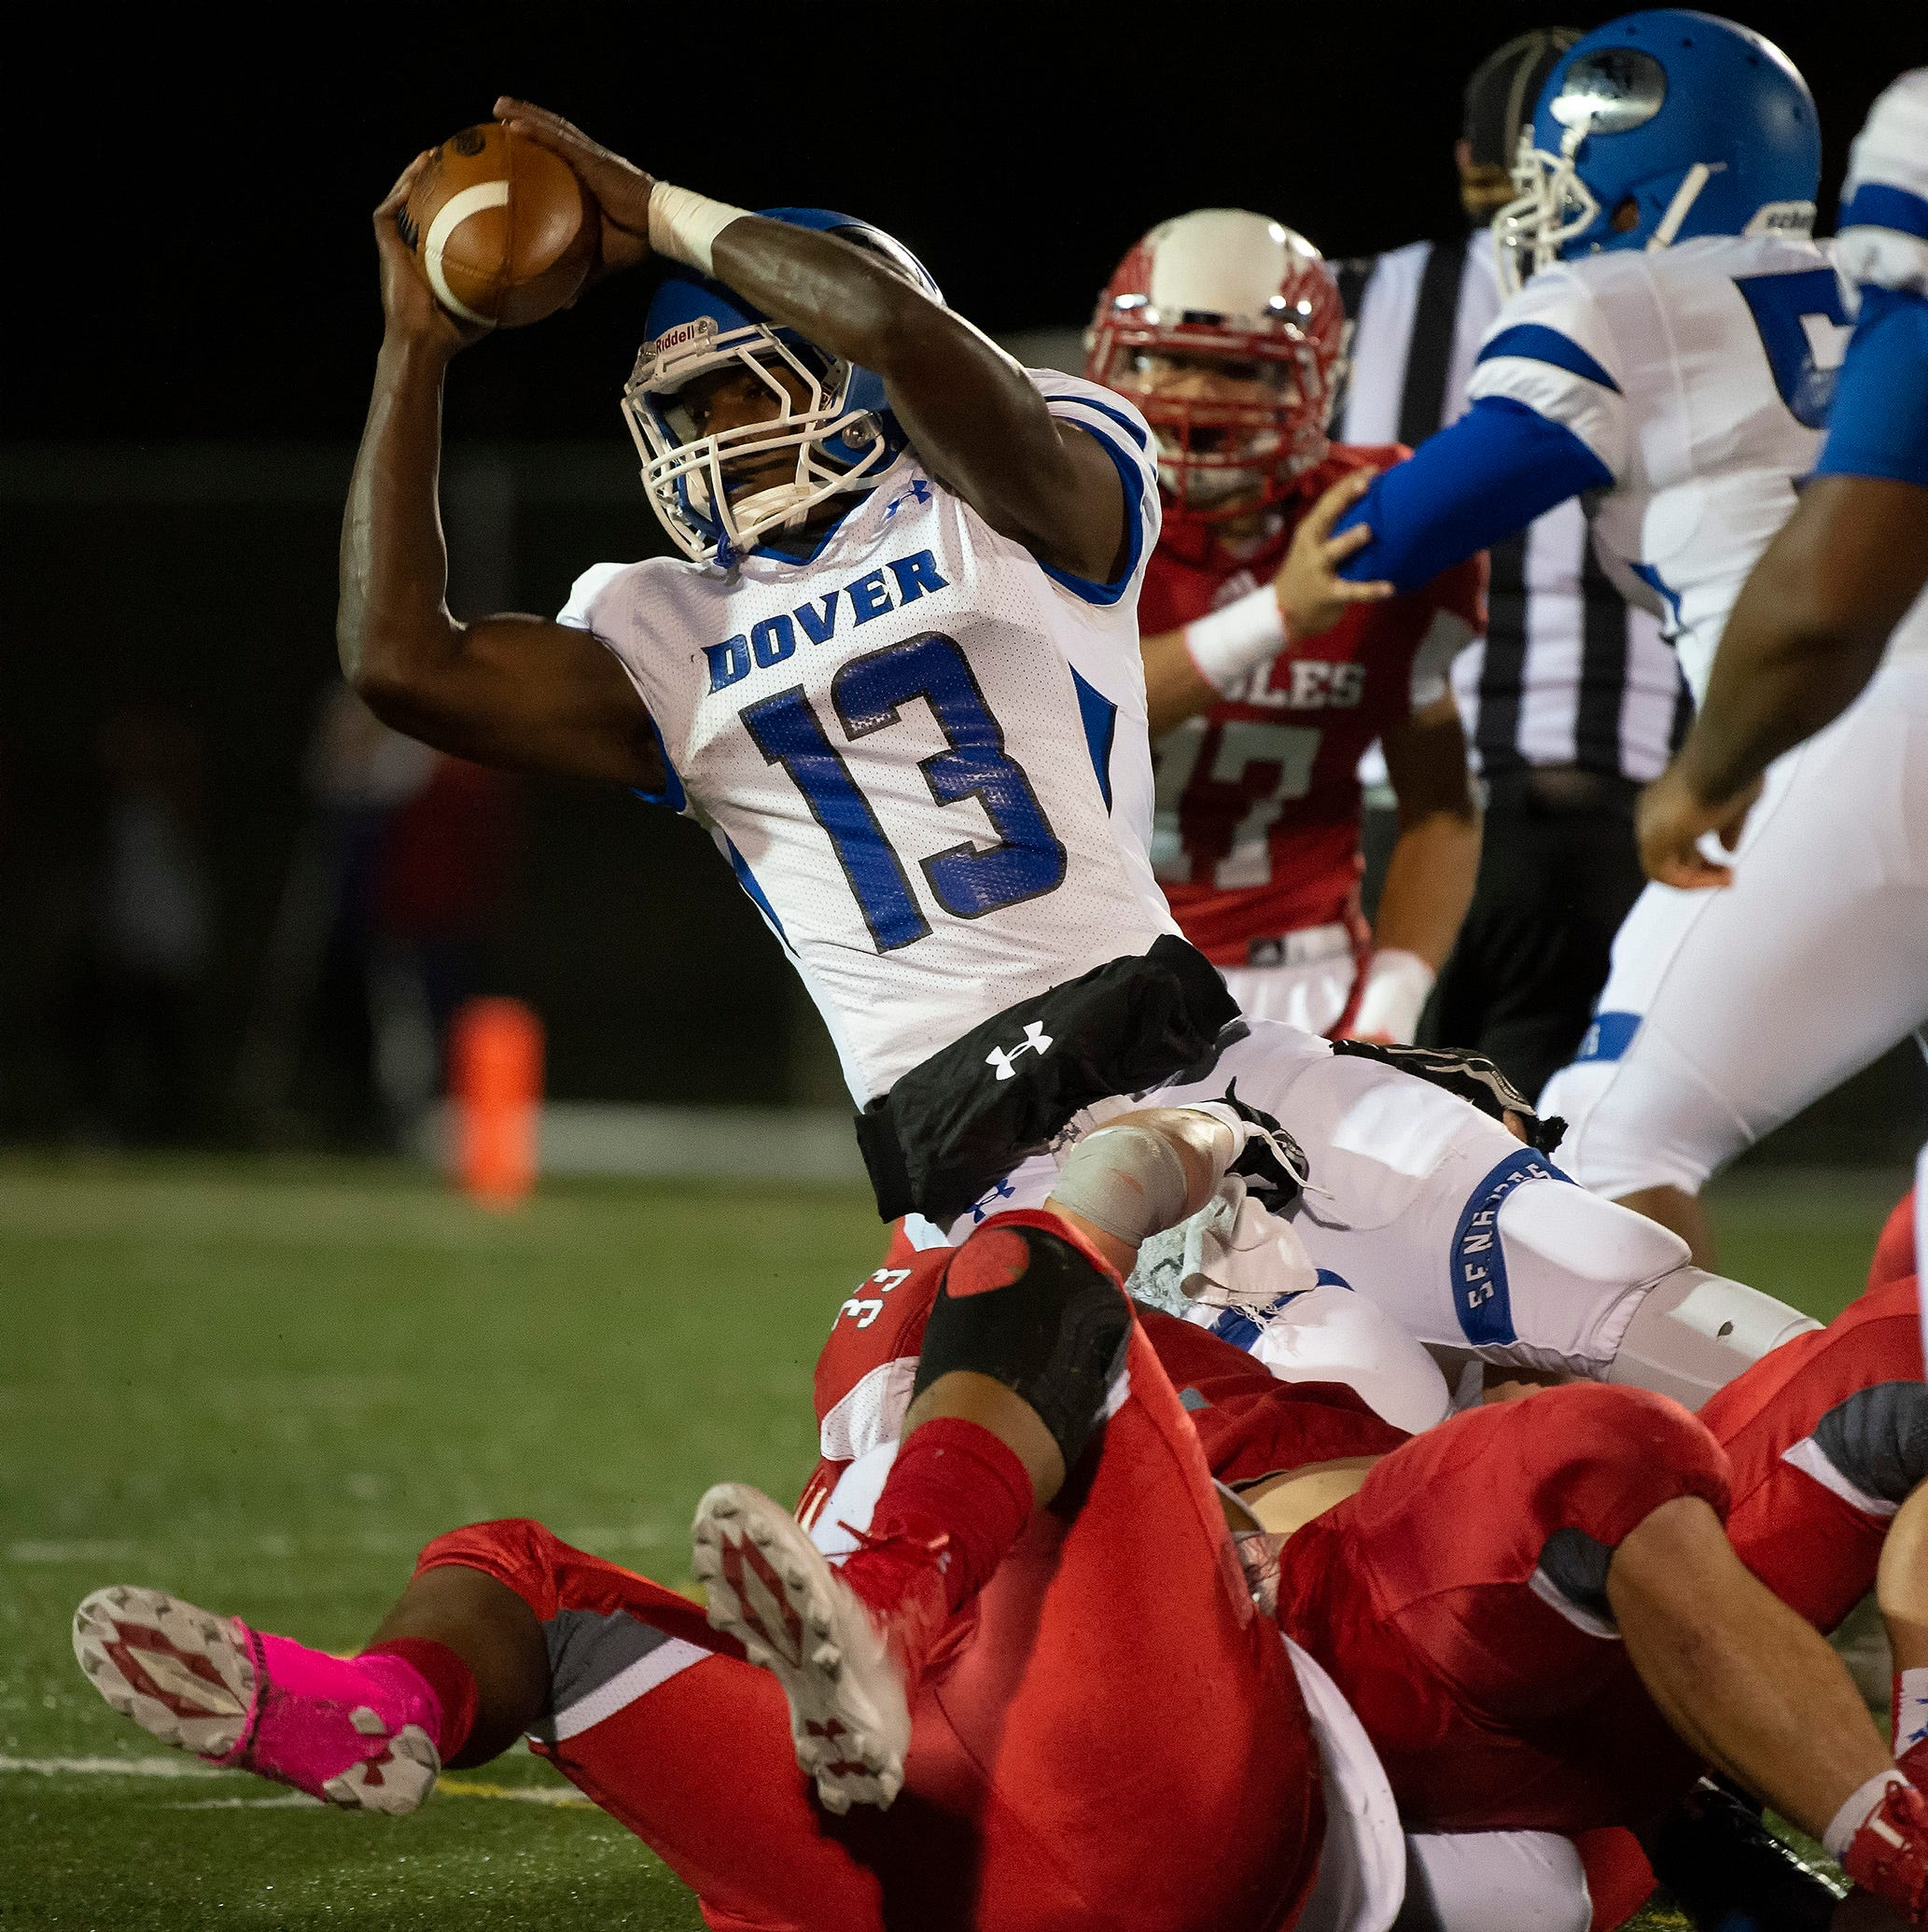 Delaware high school football: Dover holds off Smyrna after controversial calls, coach ejection